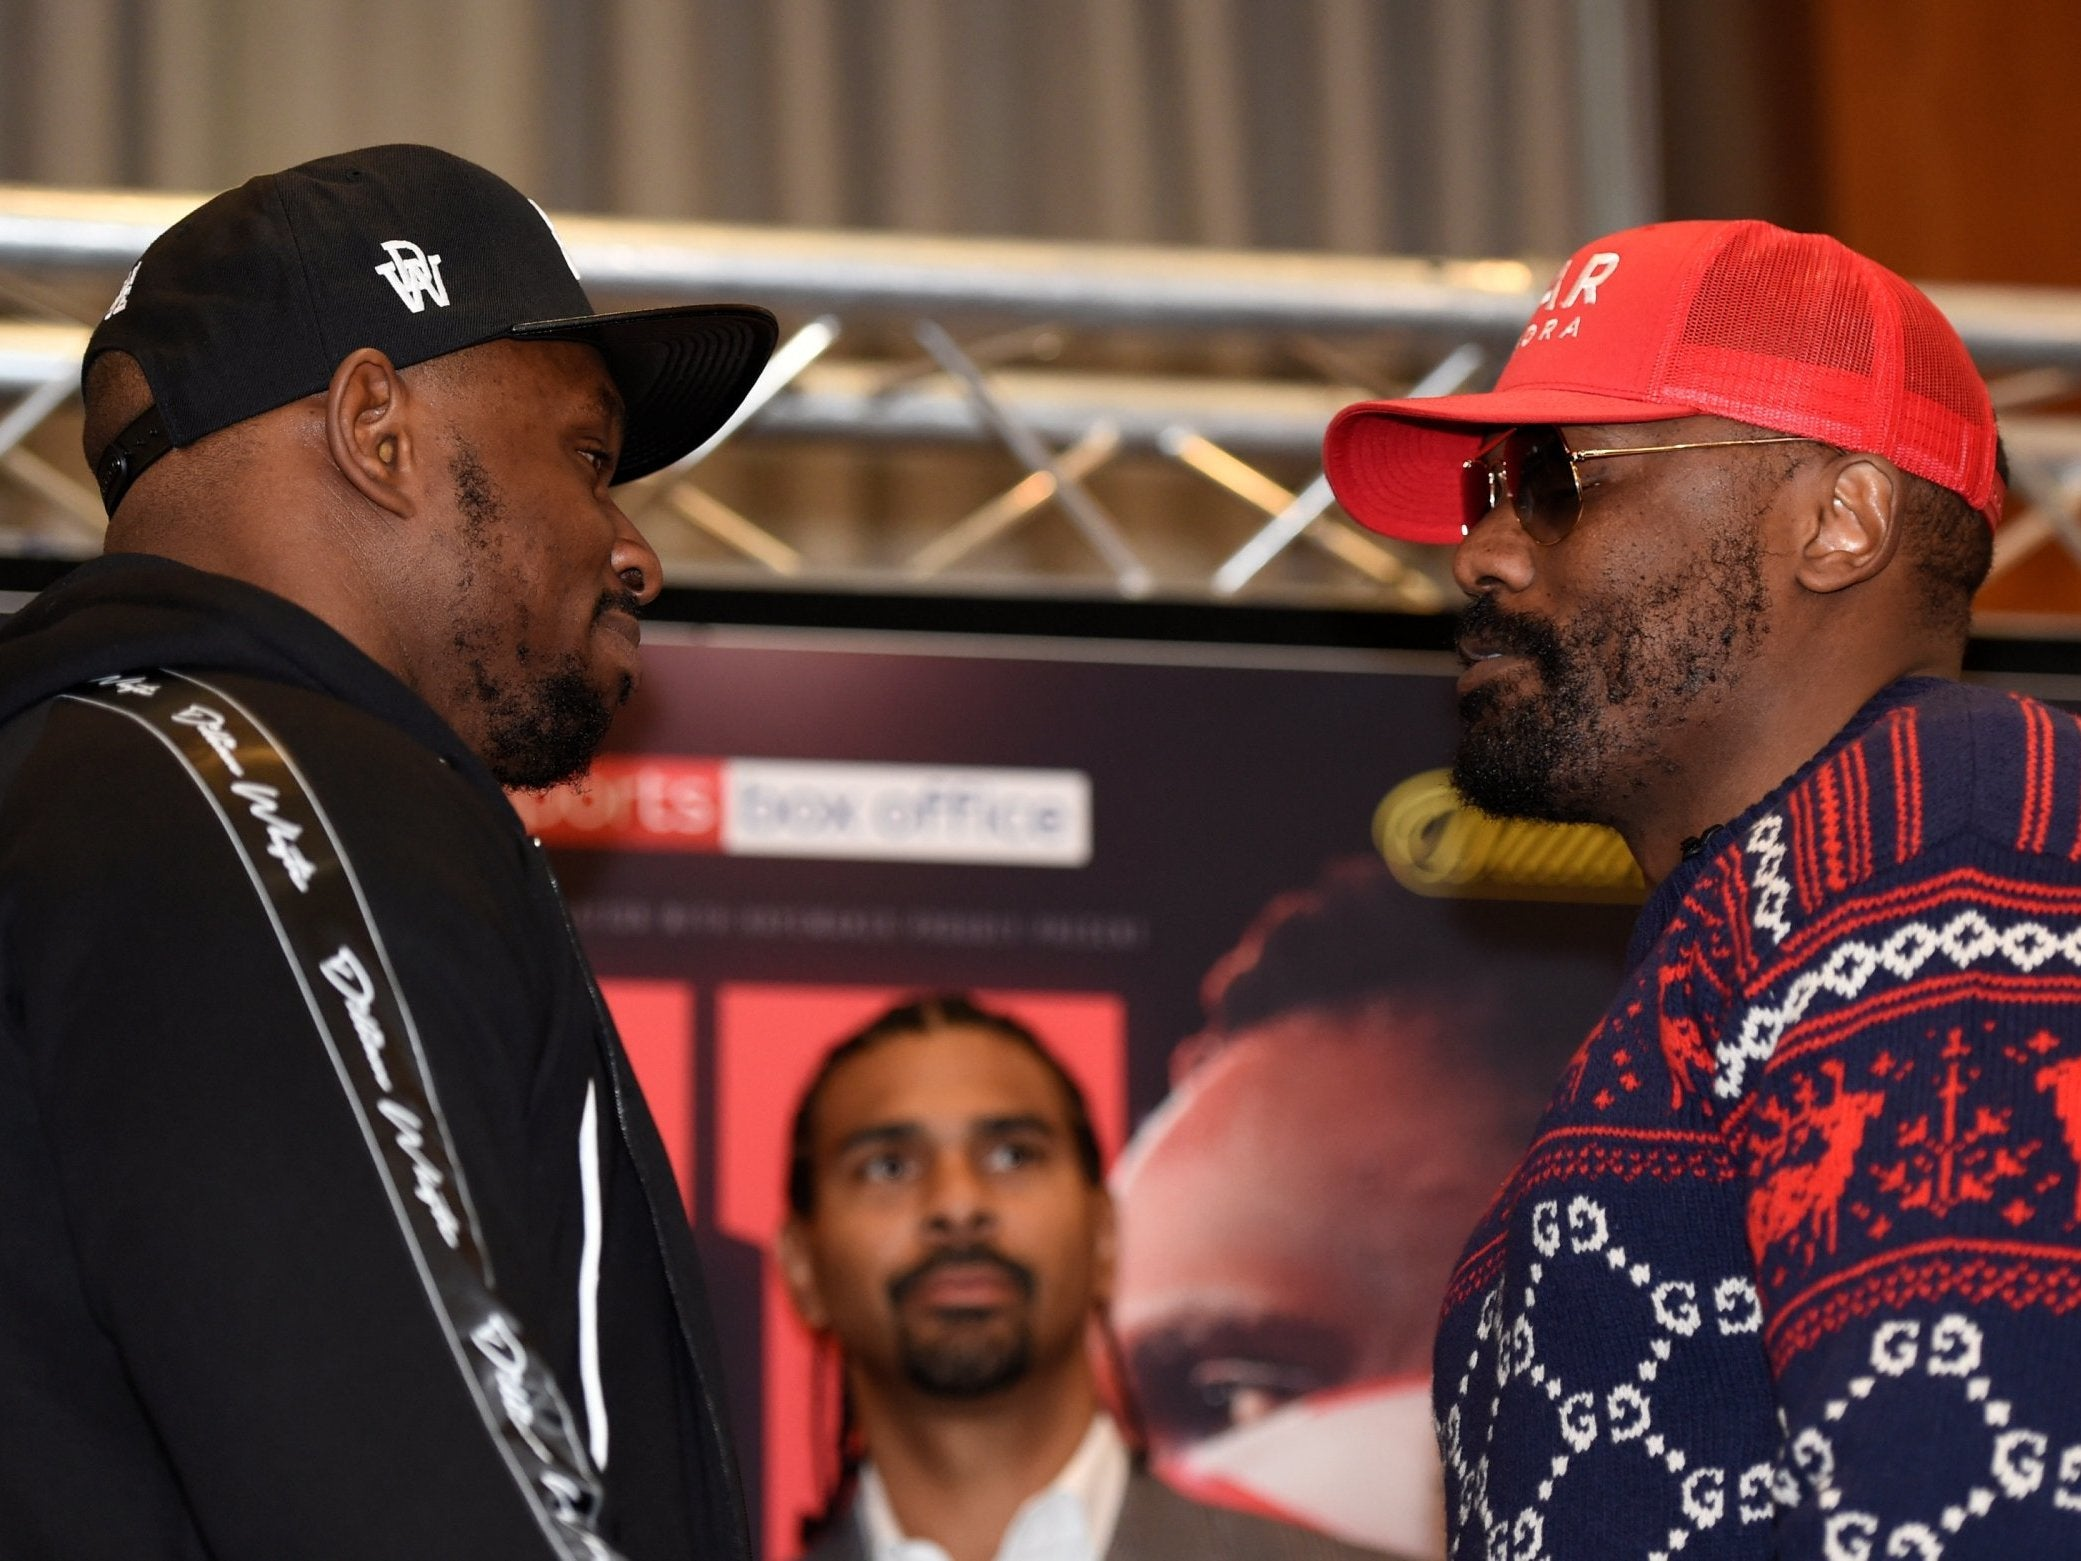 Dillian Whyte vs Dereck Chisora: What time, what TV channel